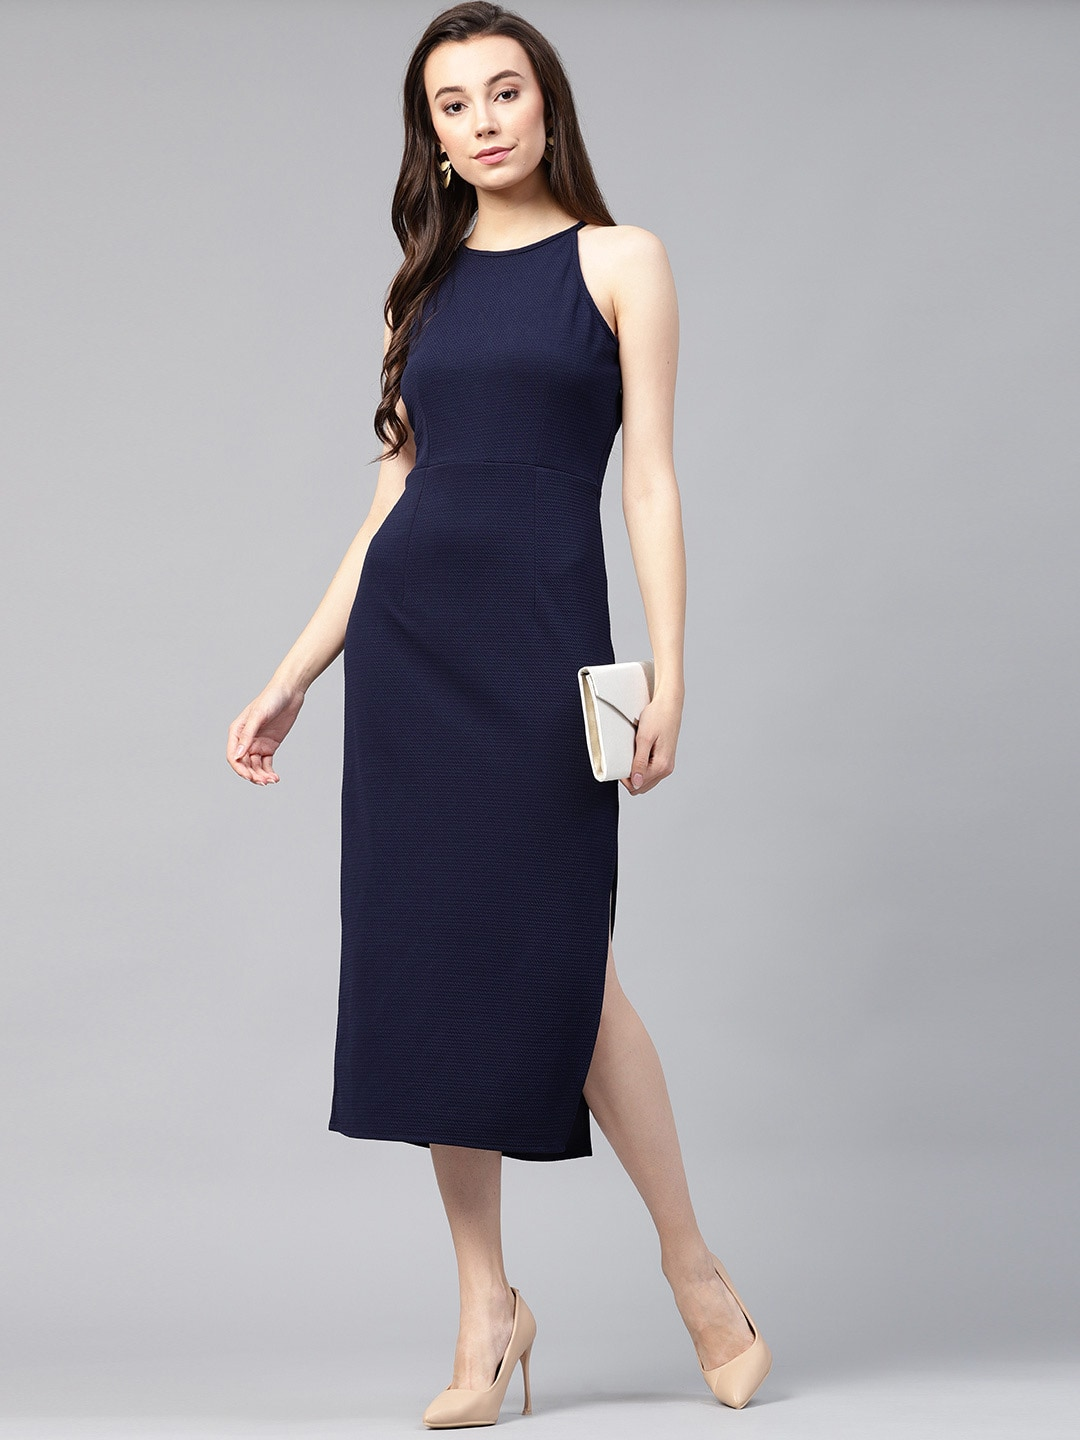 565692257e One Piece Dress - Buy One Piece Dresses for Women Online in India